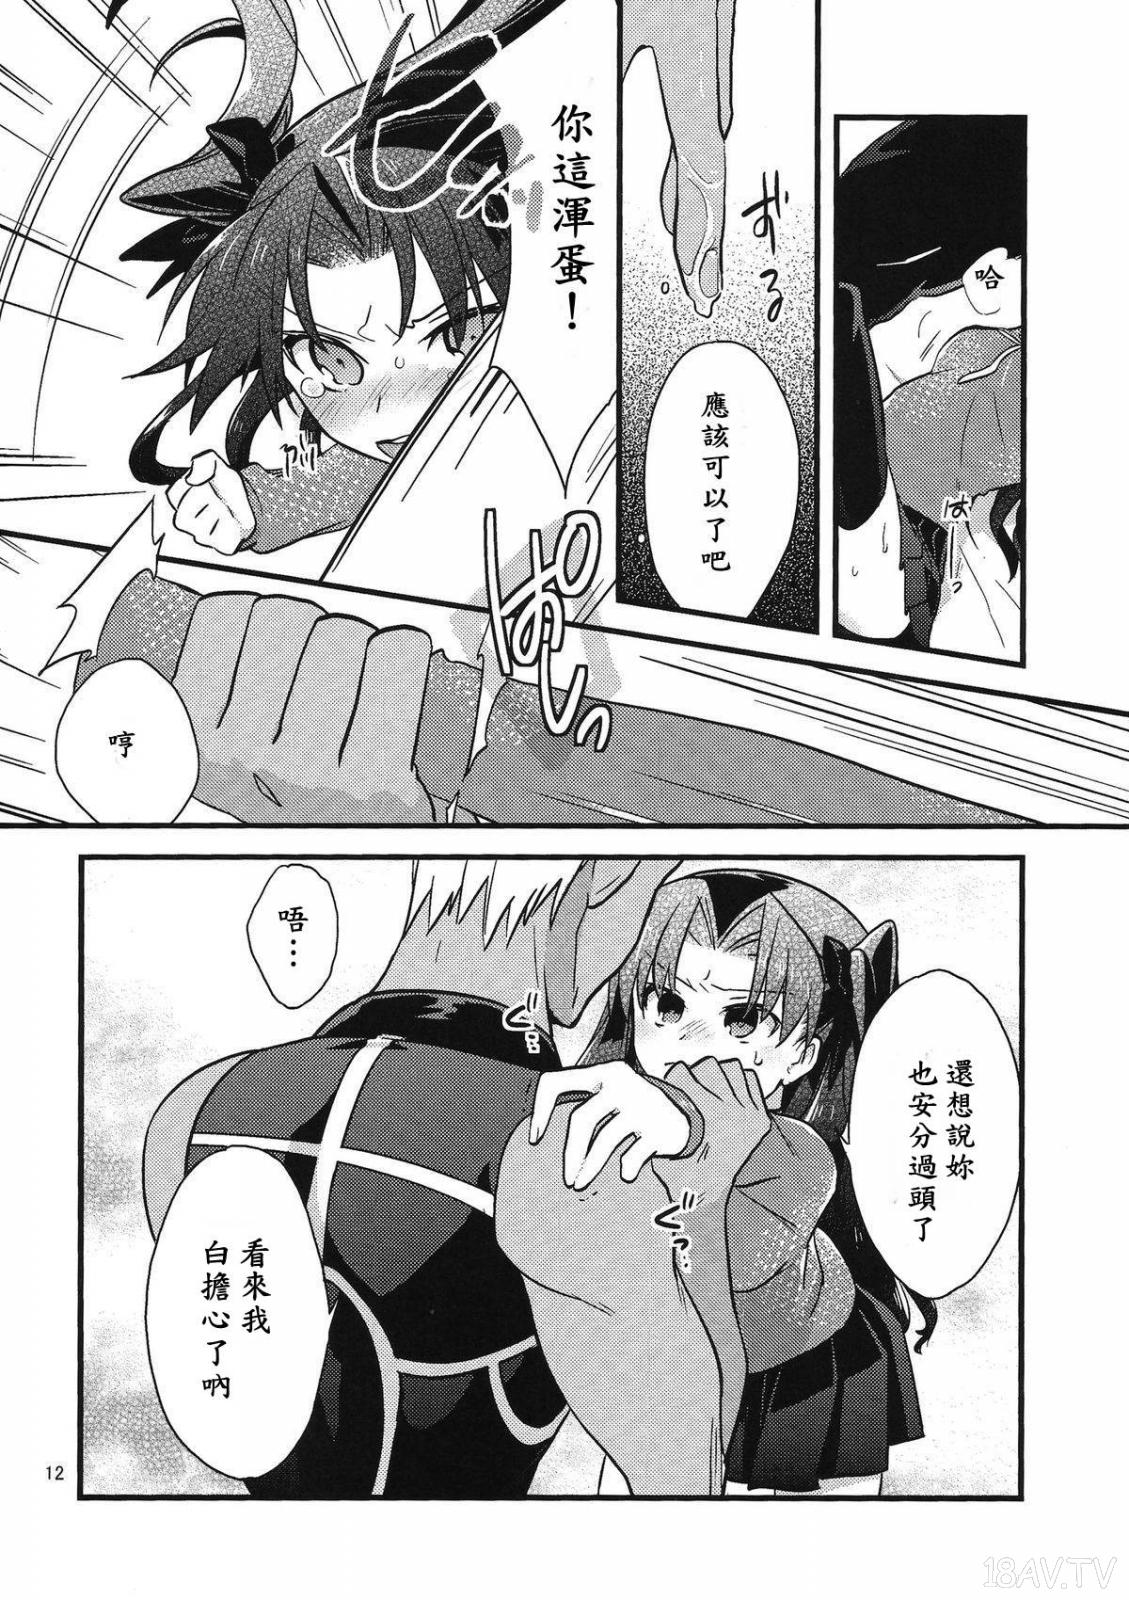 [wl00314824個人漢化] [COMIC1☆9] [云元書庫 [云元]] BERRY VERY BELLY [Fate_stay night]  [25p]